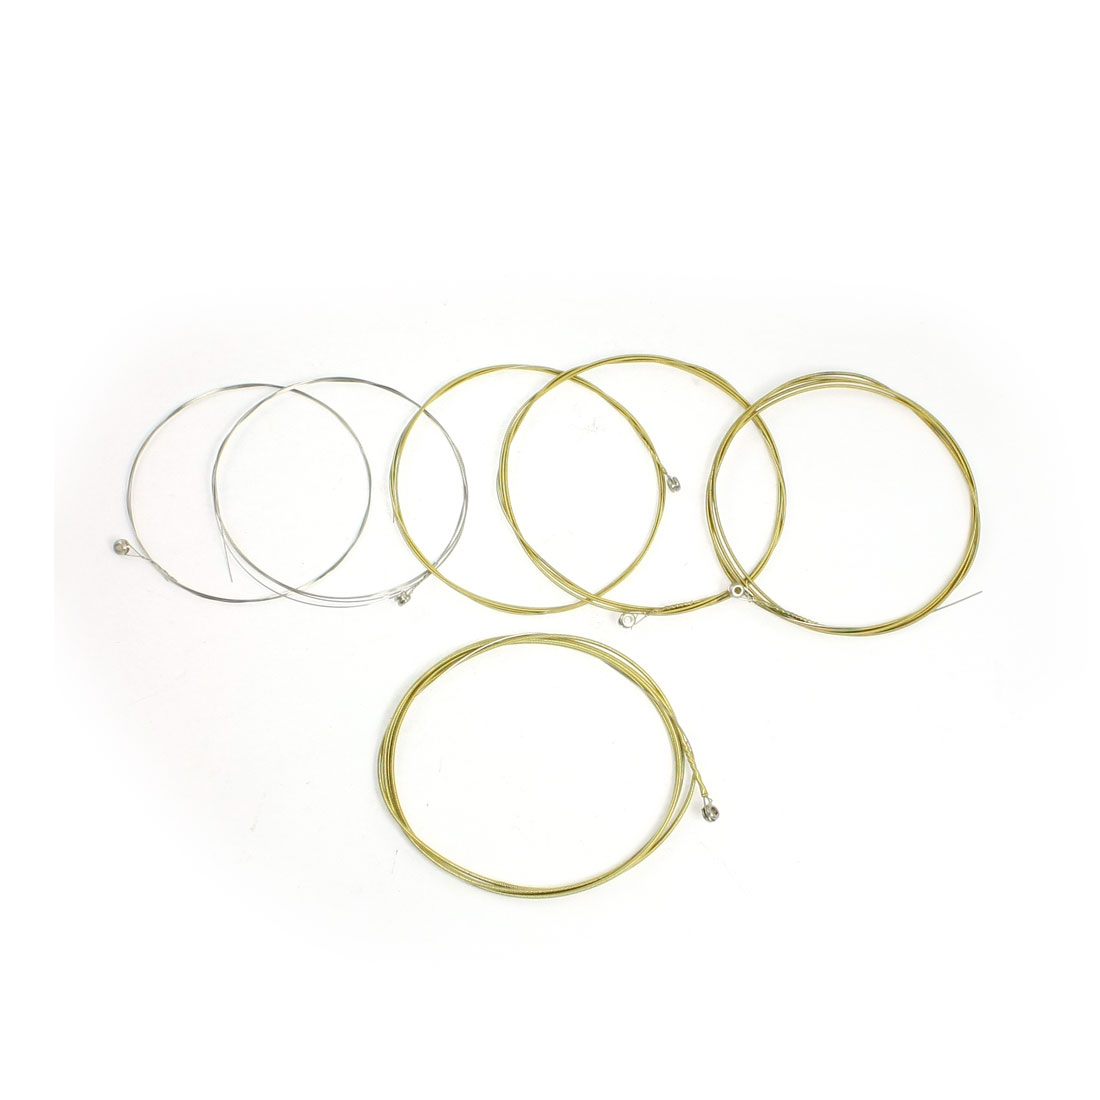 6 Pcs Gold Tone Steel Core MN10 Acoustic Guitar Strings Lines